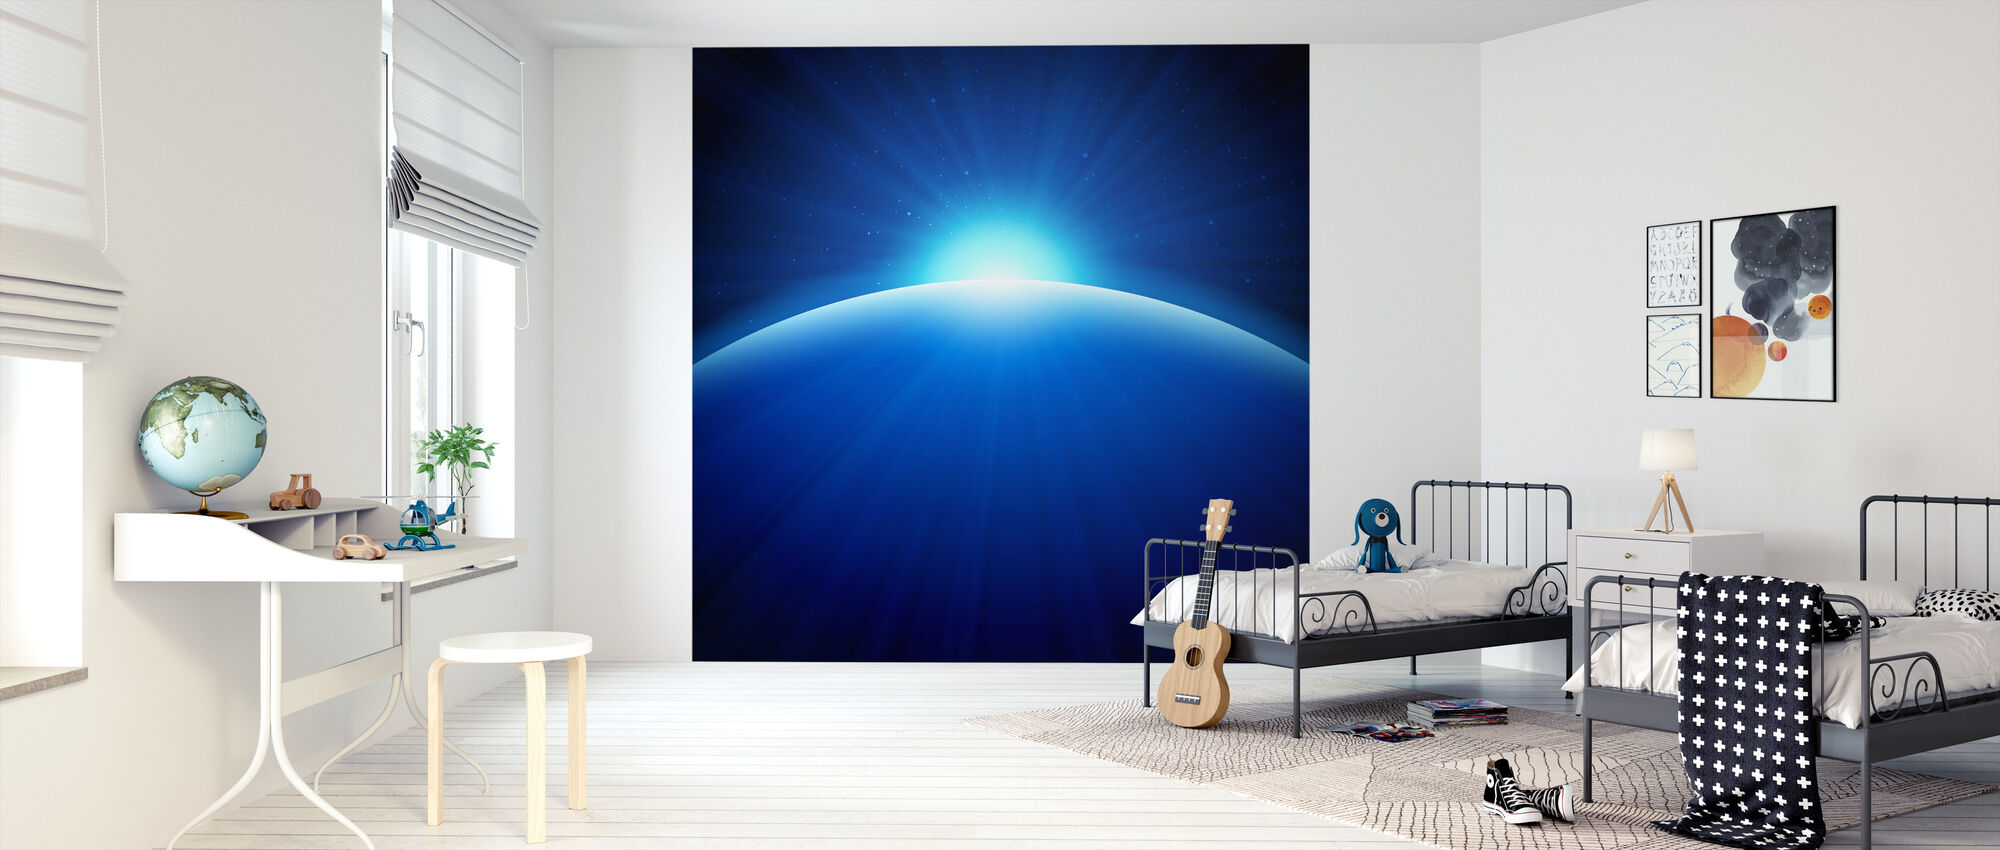 Global Edge Sunrise - Wallpaper - Kids Room